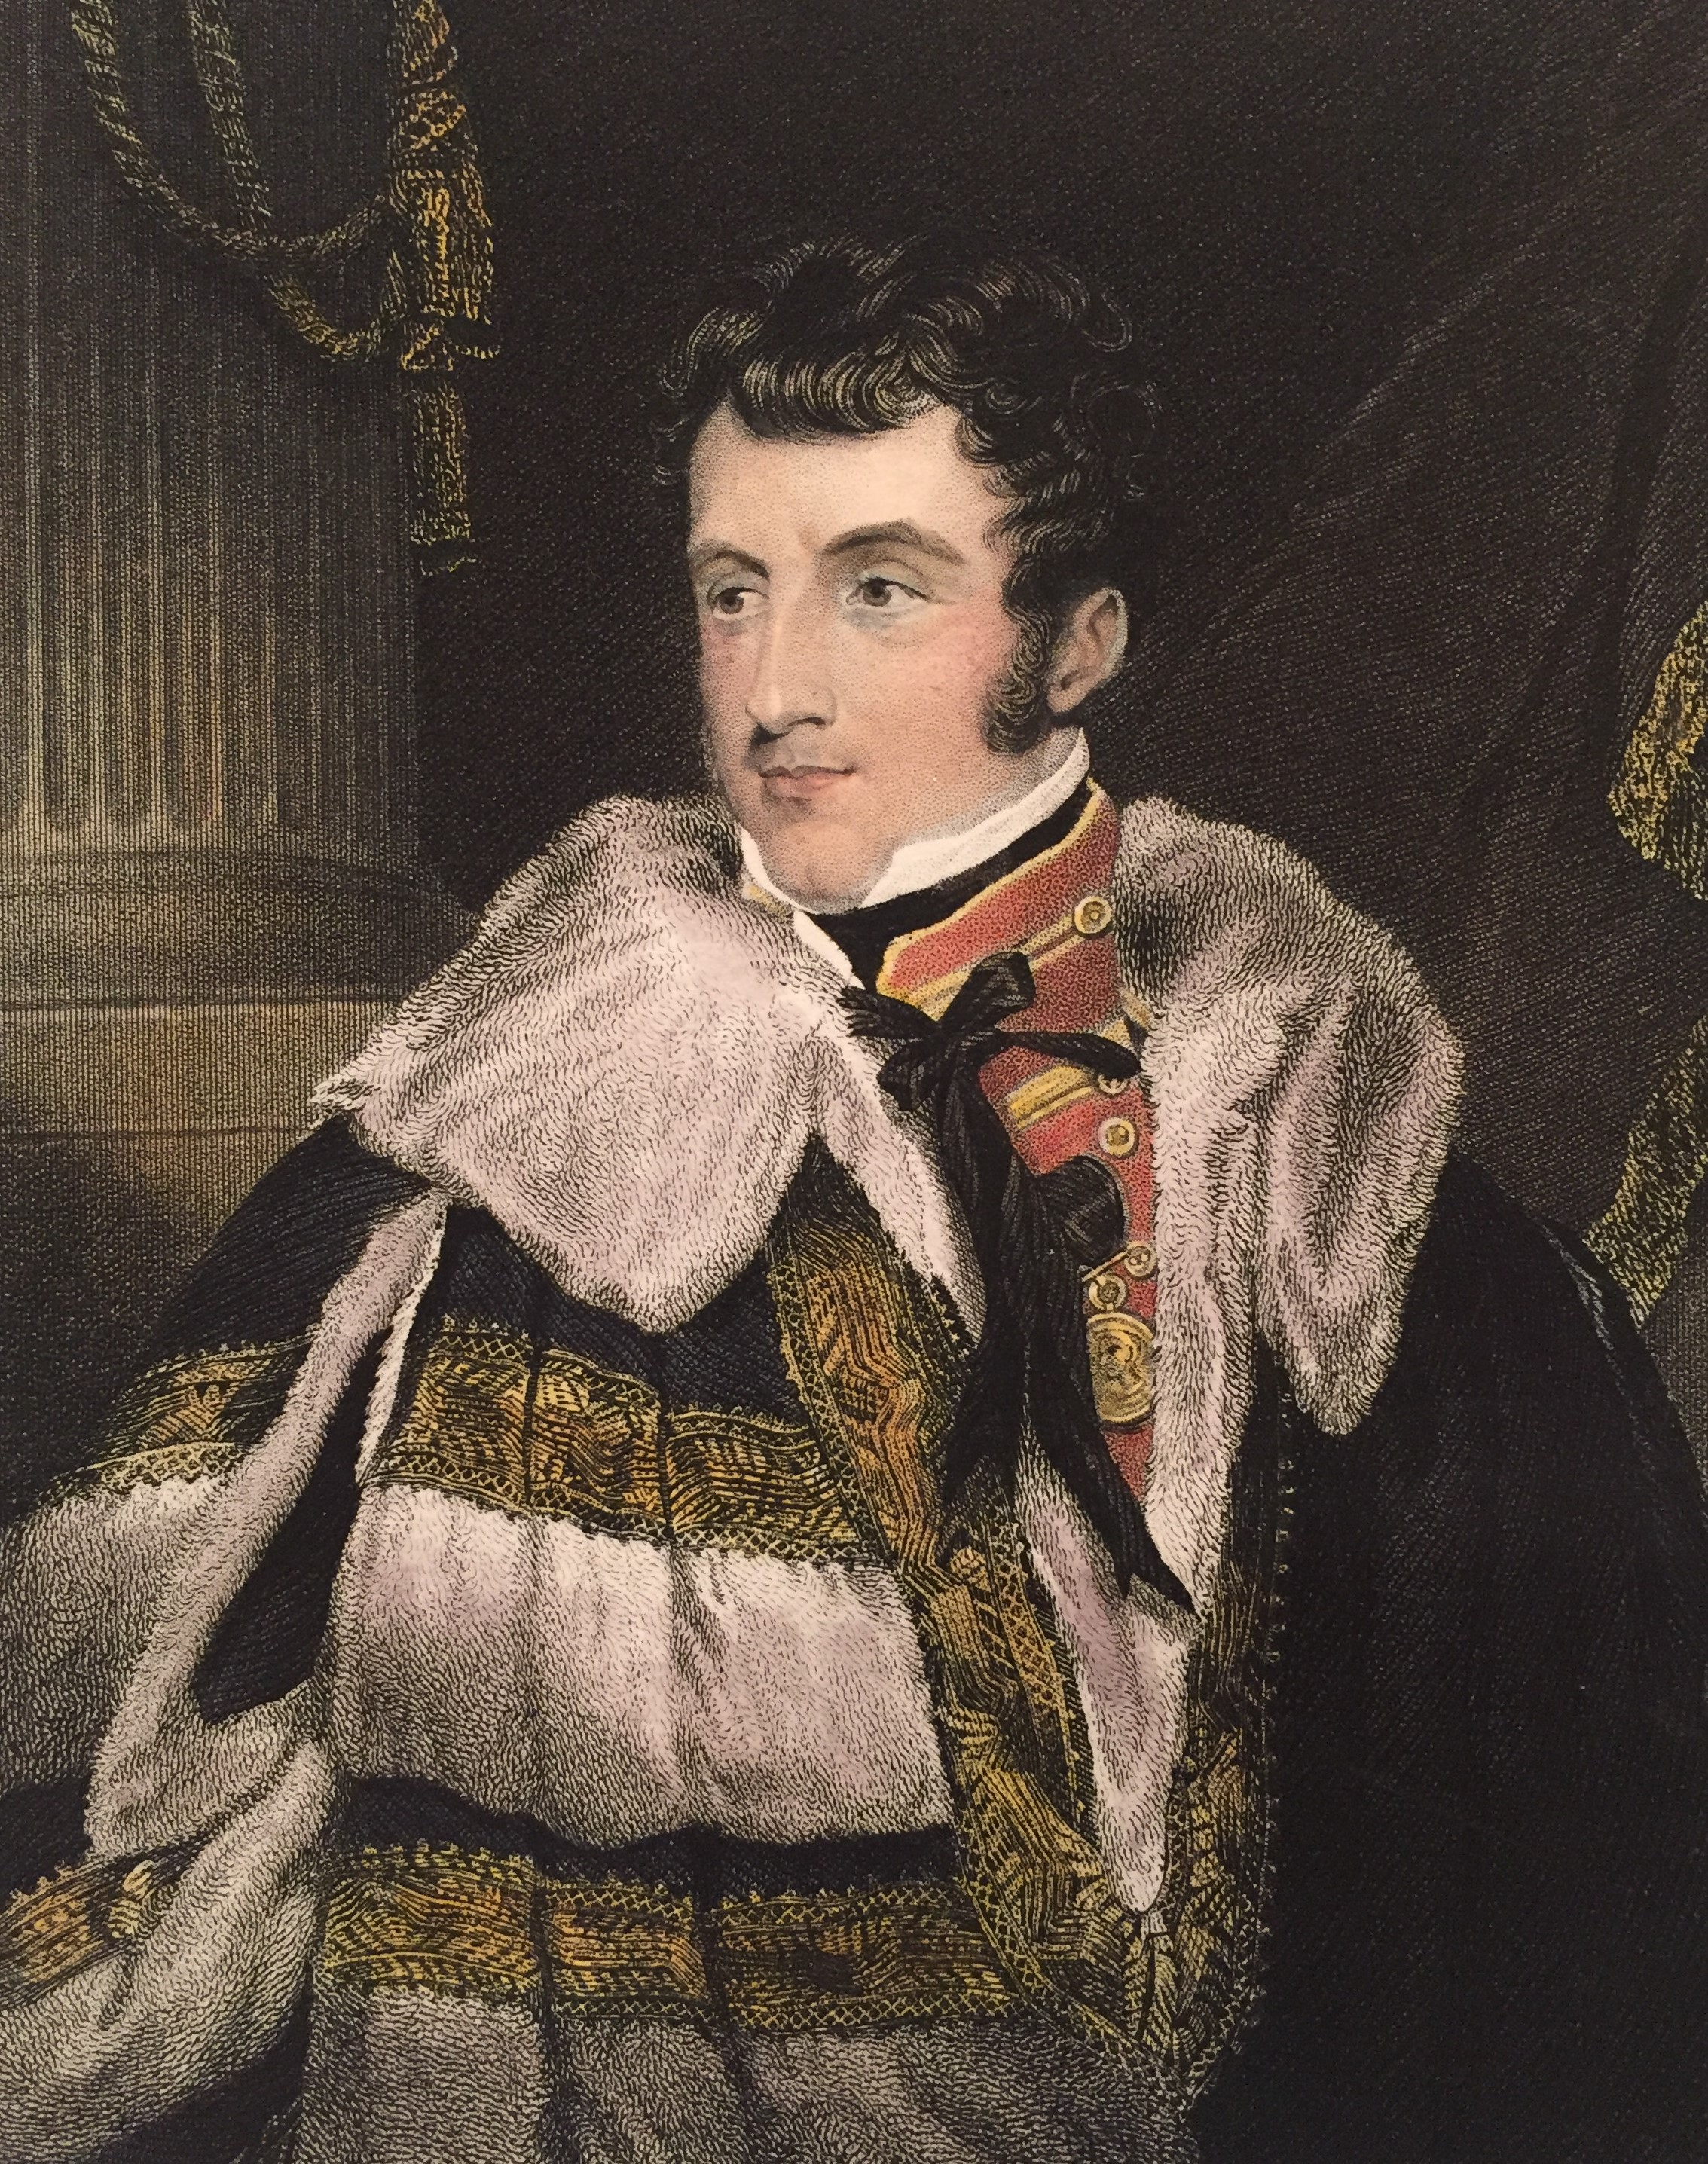 Figure 6 – Charles Gordon Lennox, the 5th Earl of Richmond shown wearing his Waterloo Medal (circa 1824). Image from author's archive.